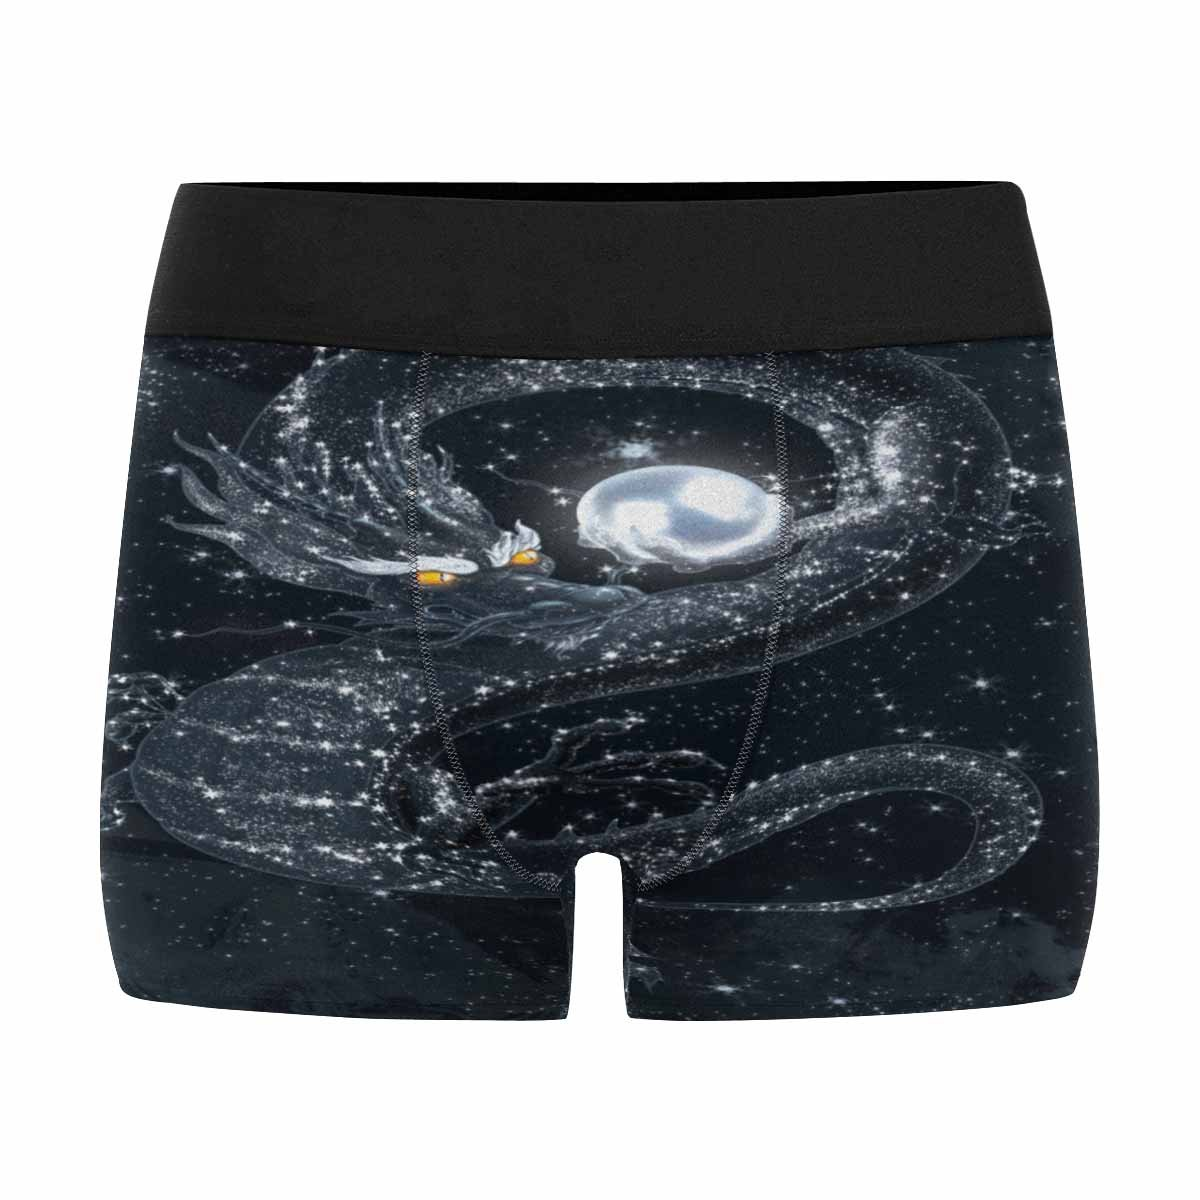 INTERESTPRINT Mens All-Over Print Boxer Briefs Dark Dragon with A Shining Pearl in The Starry Sky XS-3XL